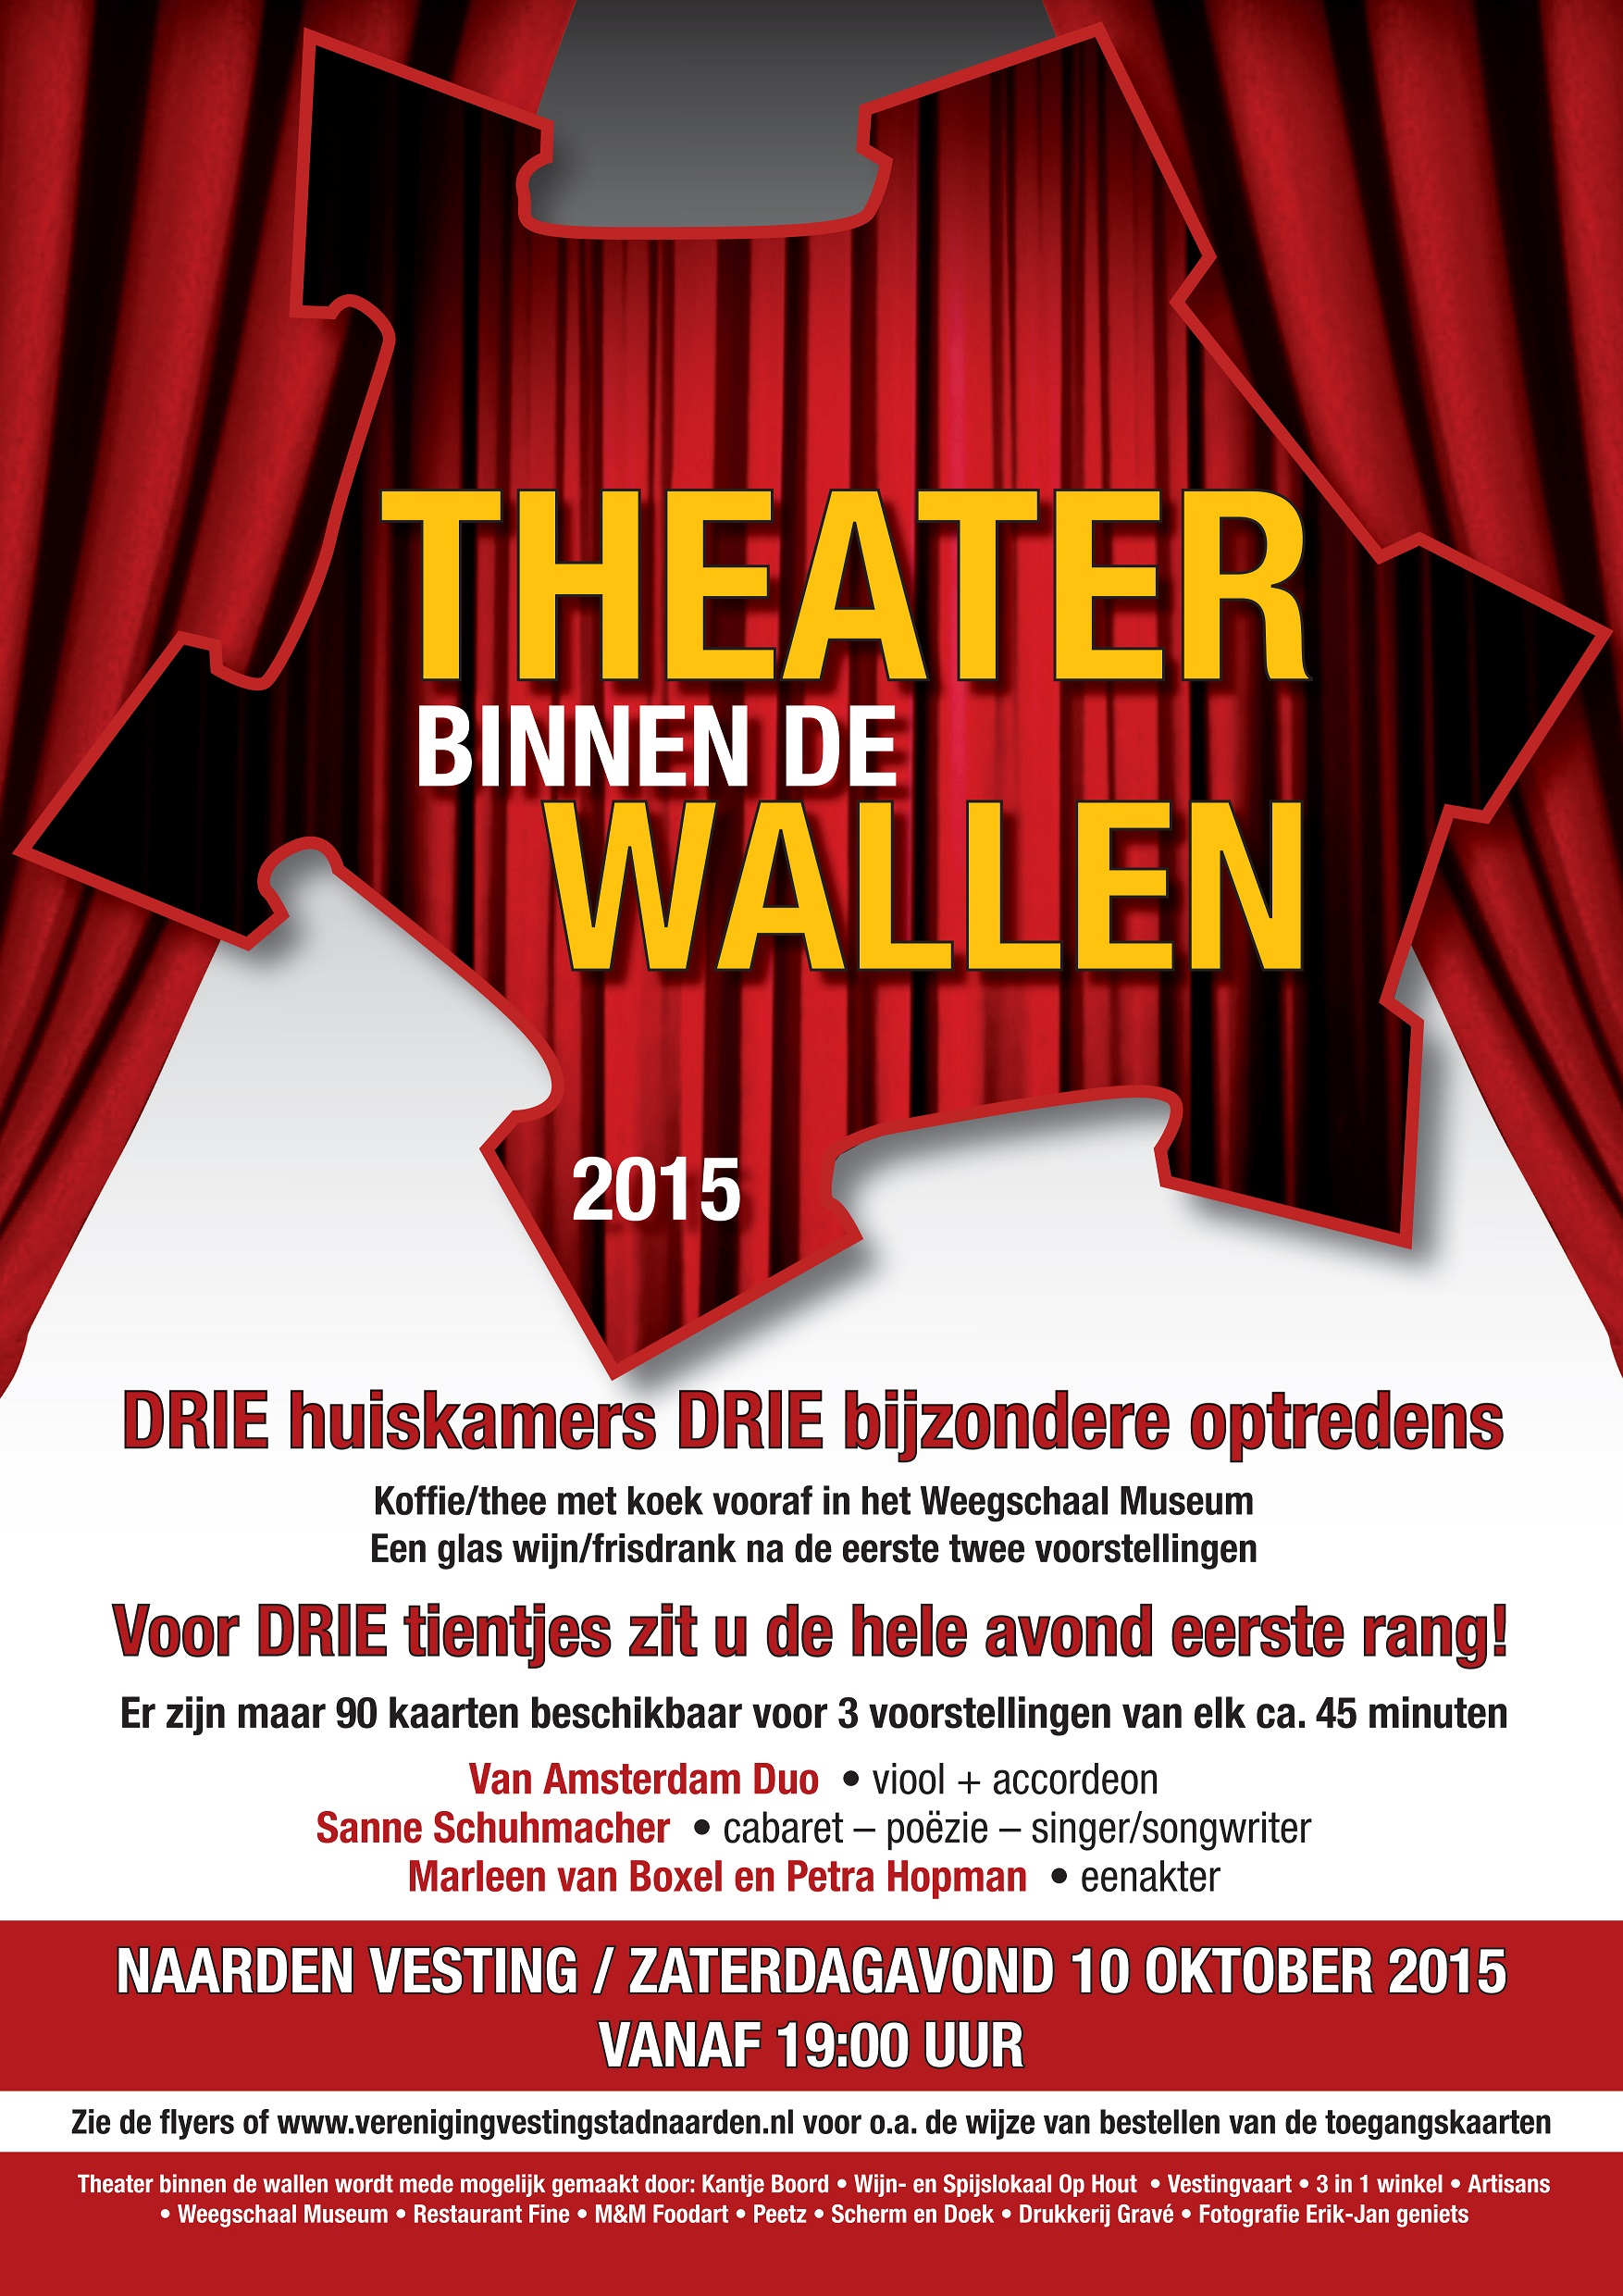 poster Theater wallen 2015.indd